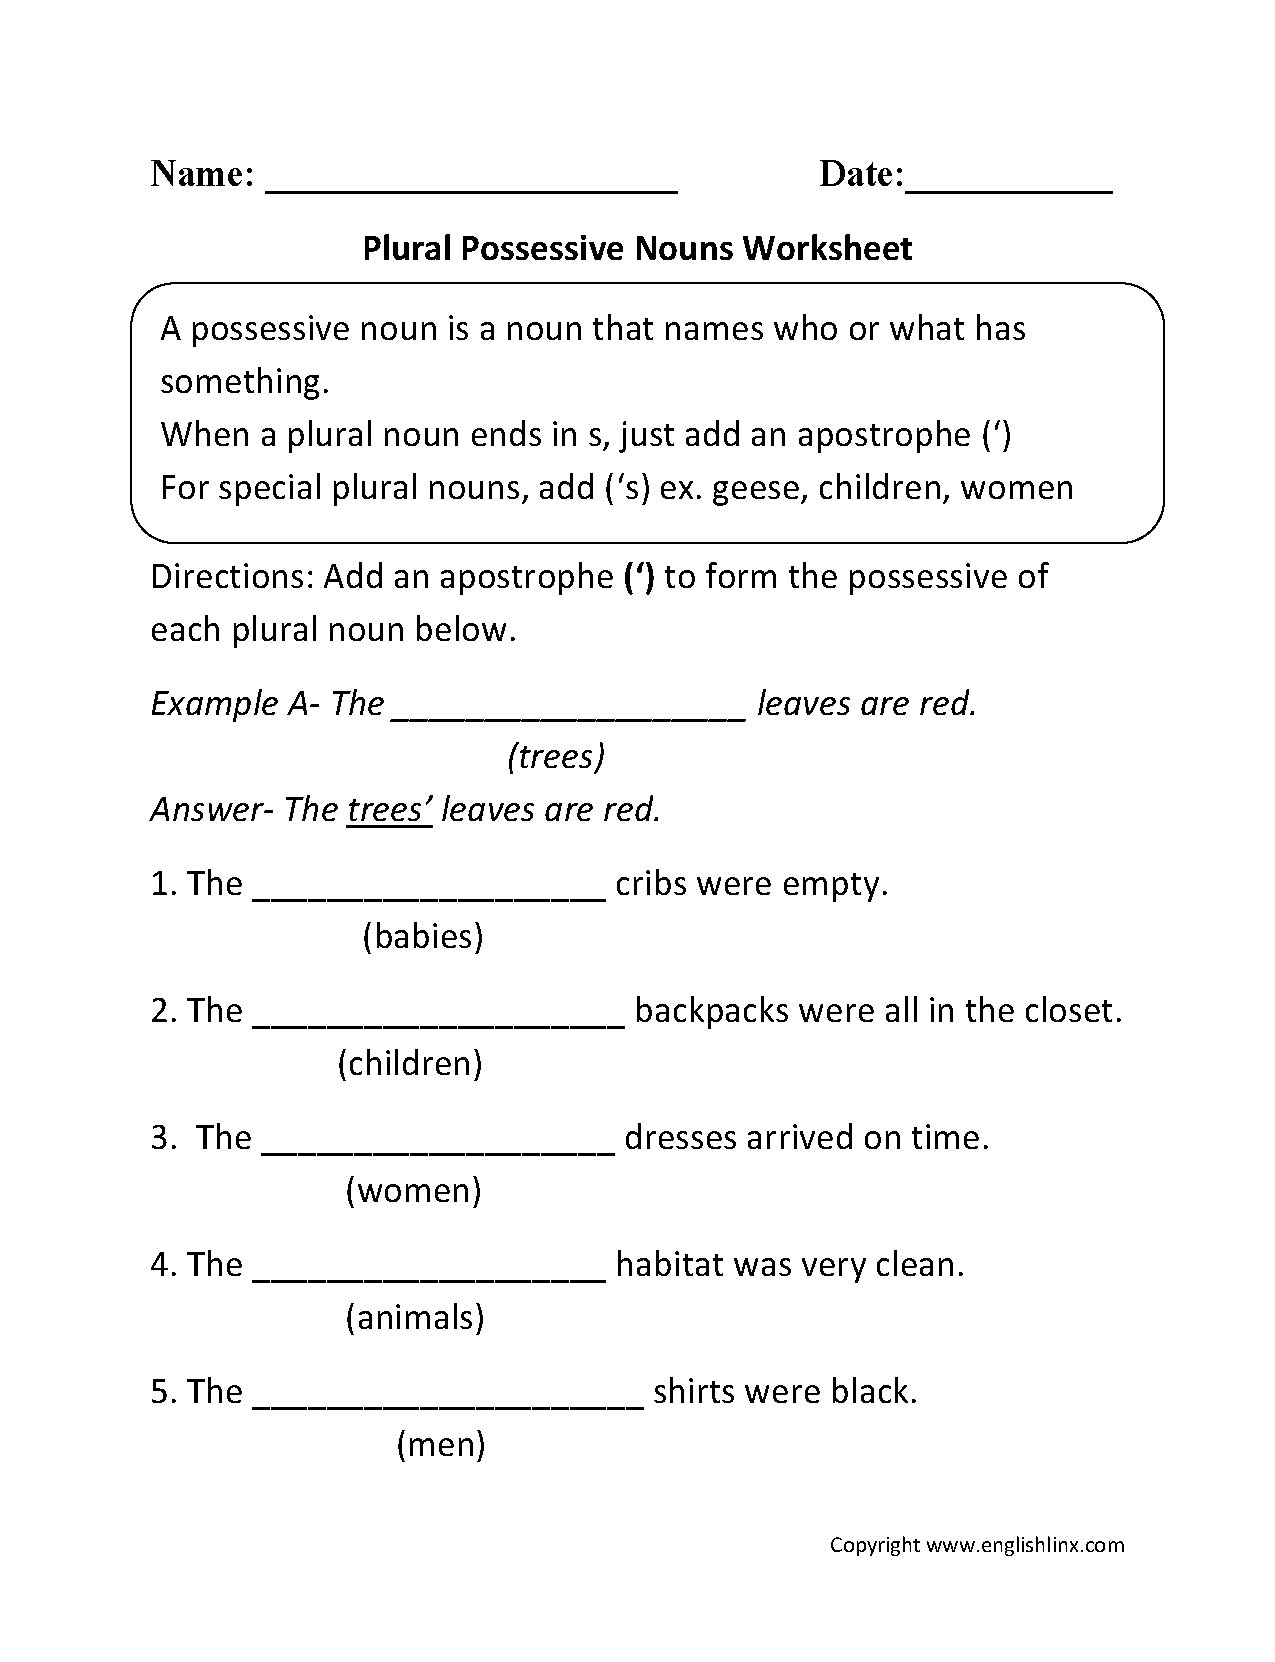 Aldiablosus  Inspiring Nouns Worksheets  Possessive Nouns Worksheets With Outstanding Possessive Nouns Worksheets With Amusing Year  Worksheets Literacy Also Regular And Irregular Shapes Worksheet In Addition Suffix Worksheet Th Grade And Body Systems For Kids Worksheets As Well As Fractions Worksheets Ks Additionally Comprehension Worksheets For Year  From Englishlinxcom With Aldiablosus  Outstanding Nouns Worksheets  Possessive Nouns Worksheets With Amusing Possessive Nouns Worksheets And Inspiring Year  Worksheets Literacy Also Regular And Irregular Shapes Worksheet In Addition Suffix Worksheet Th Grade From Englishlinxcom